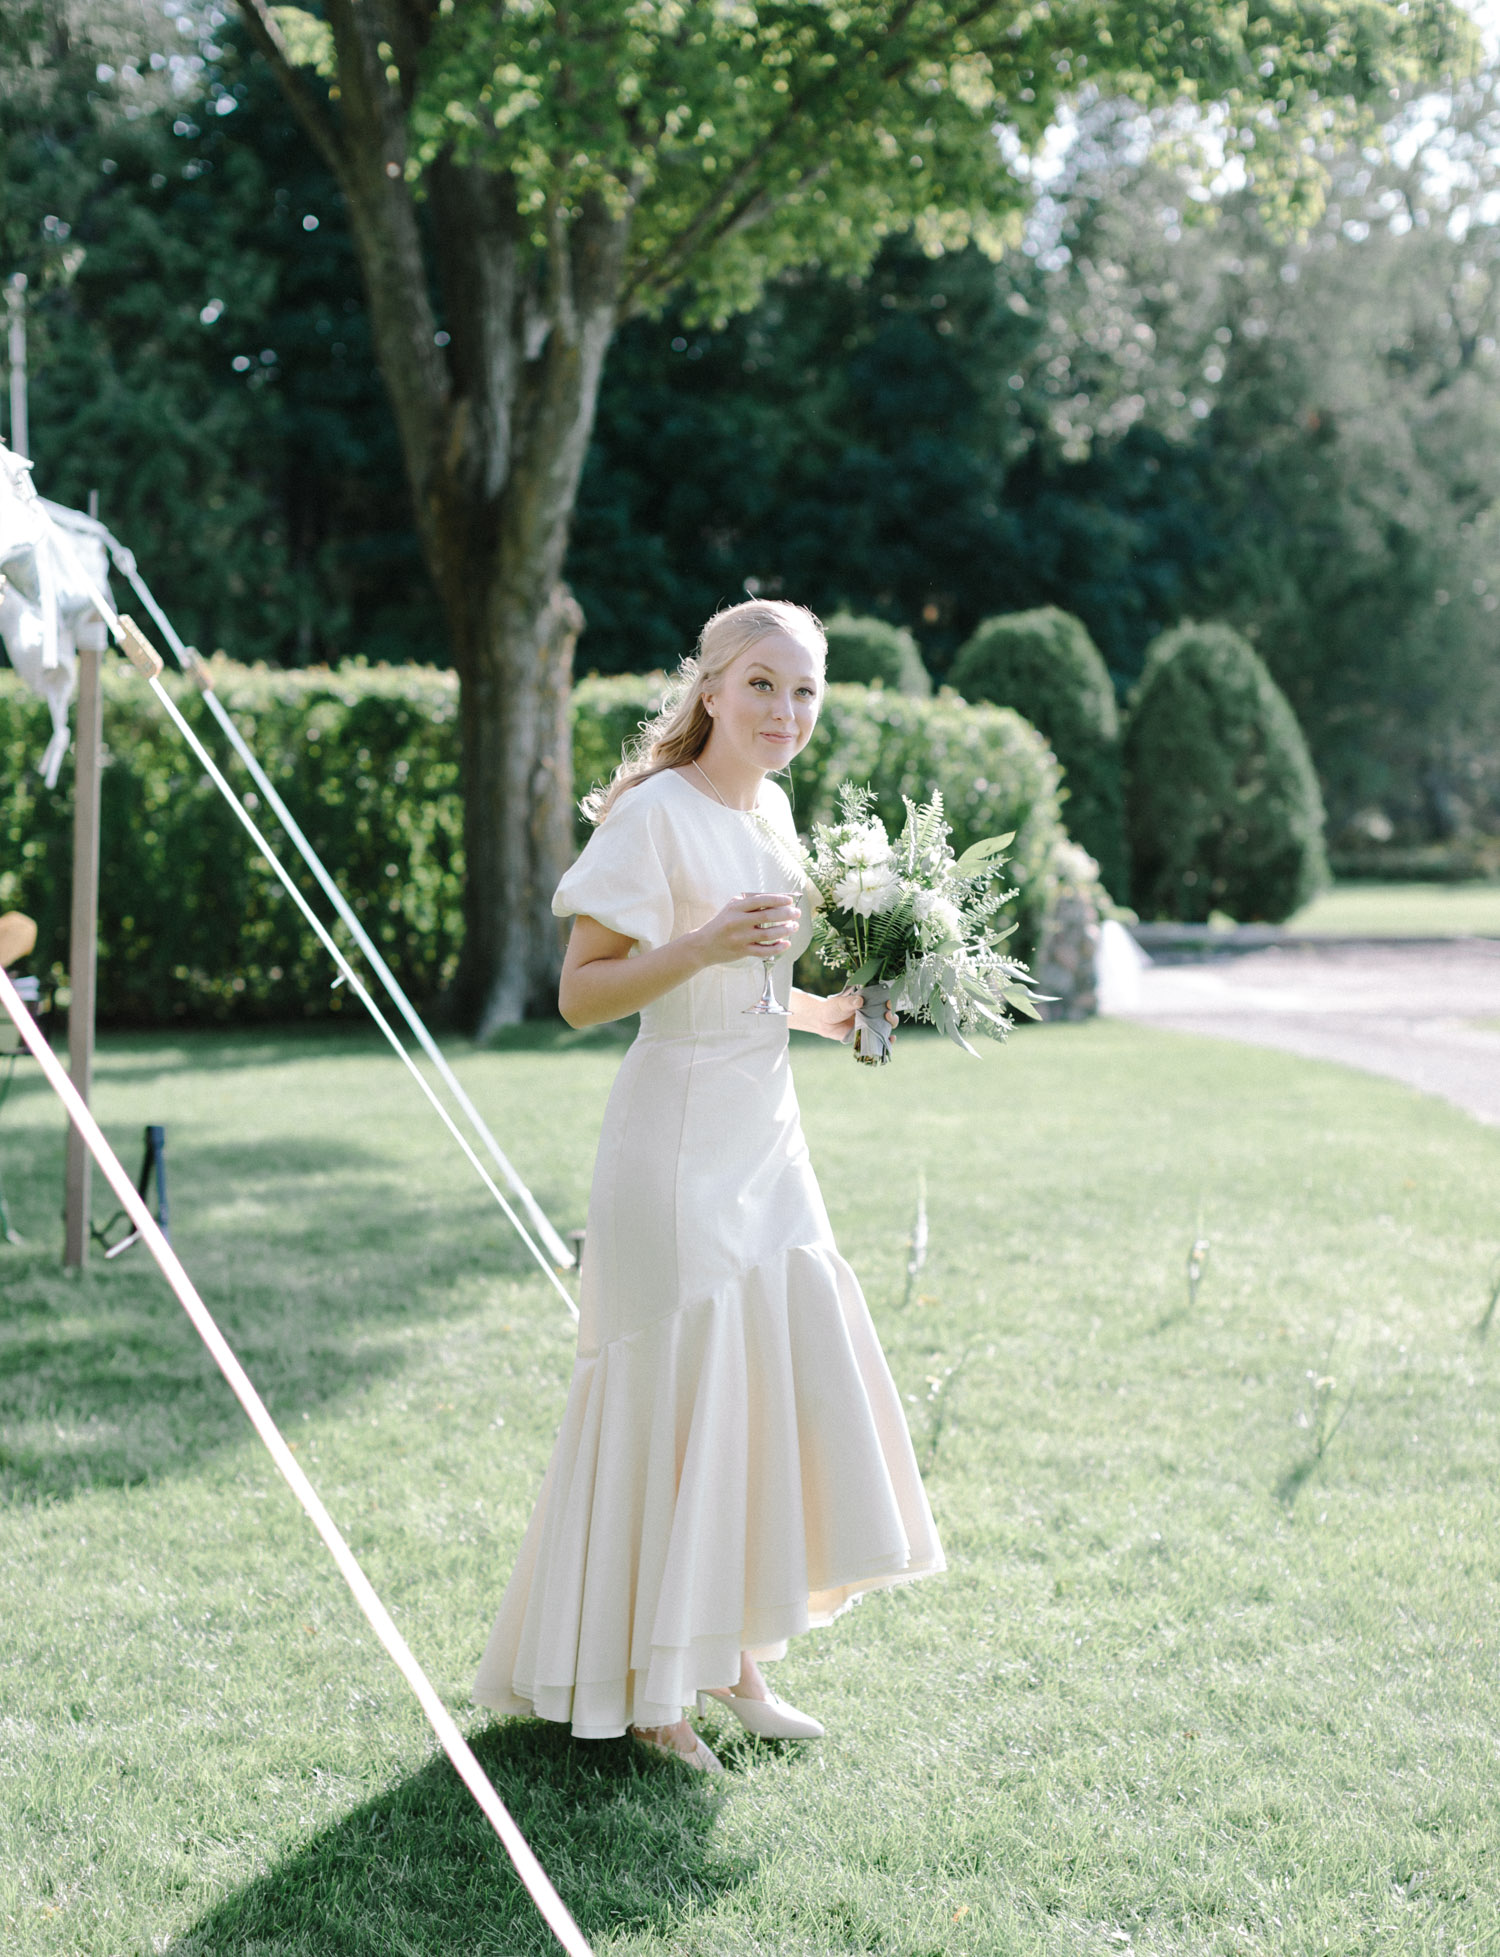 A bride with vintage style walks under a sailcloth tent in Northern Michigan